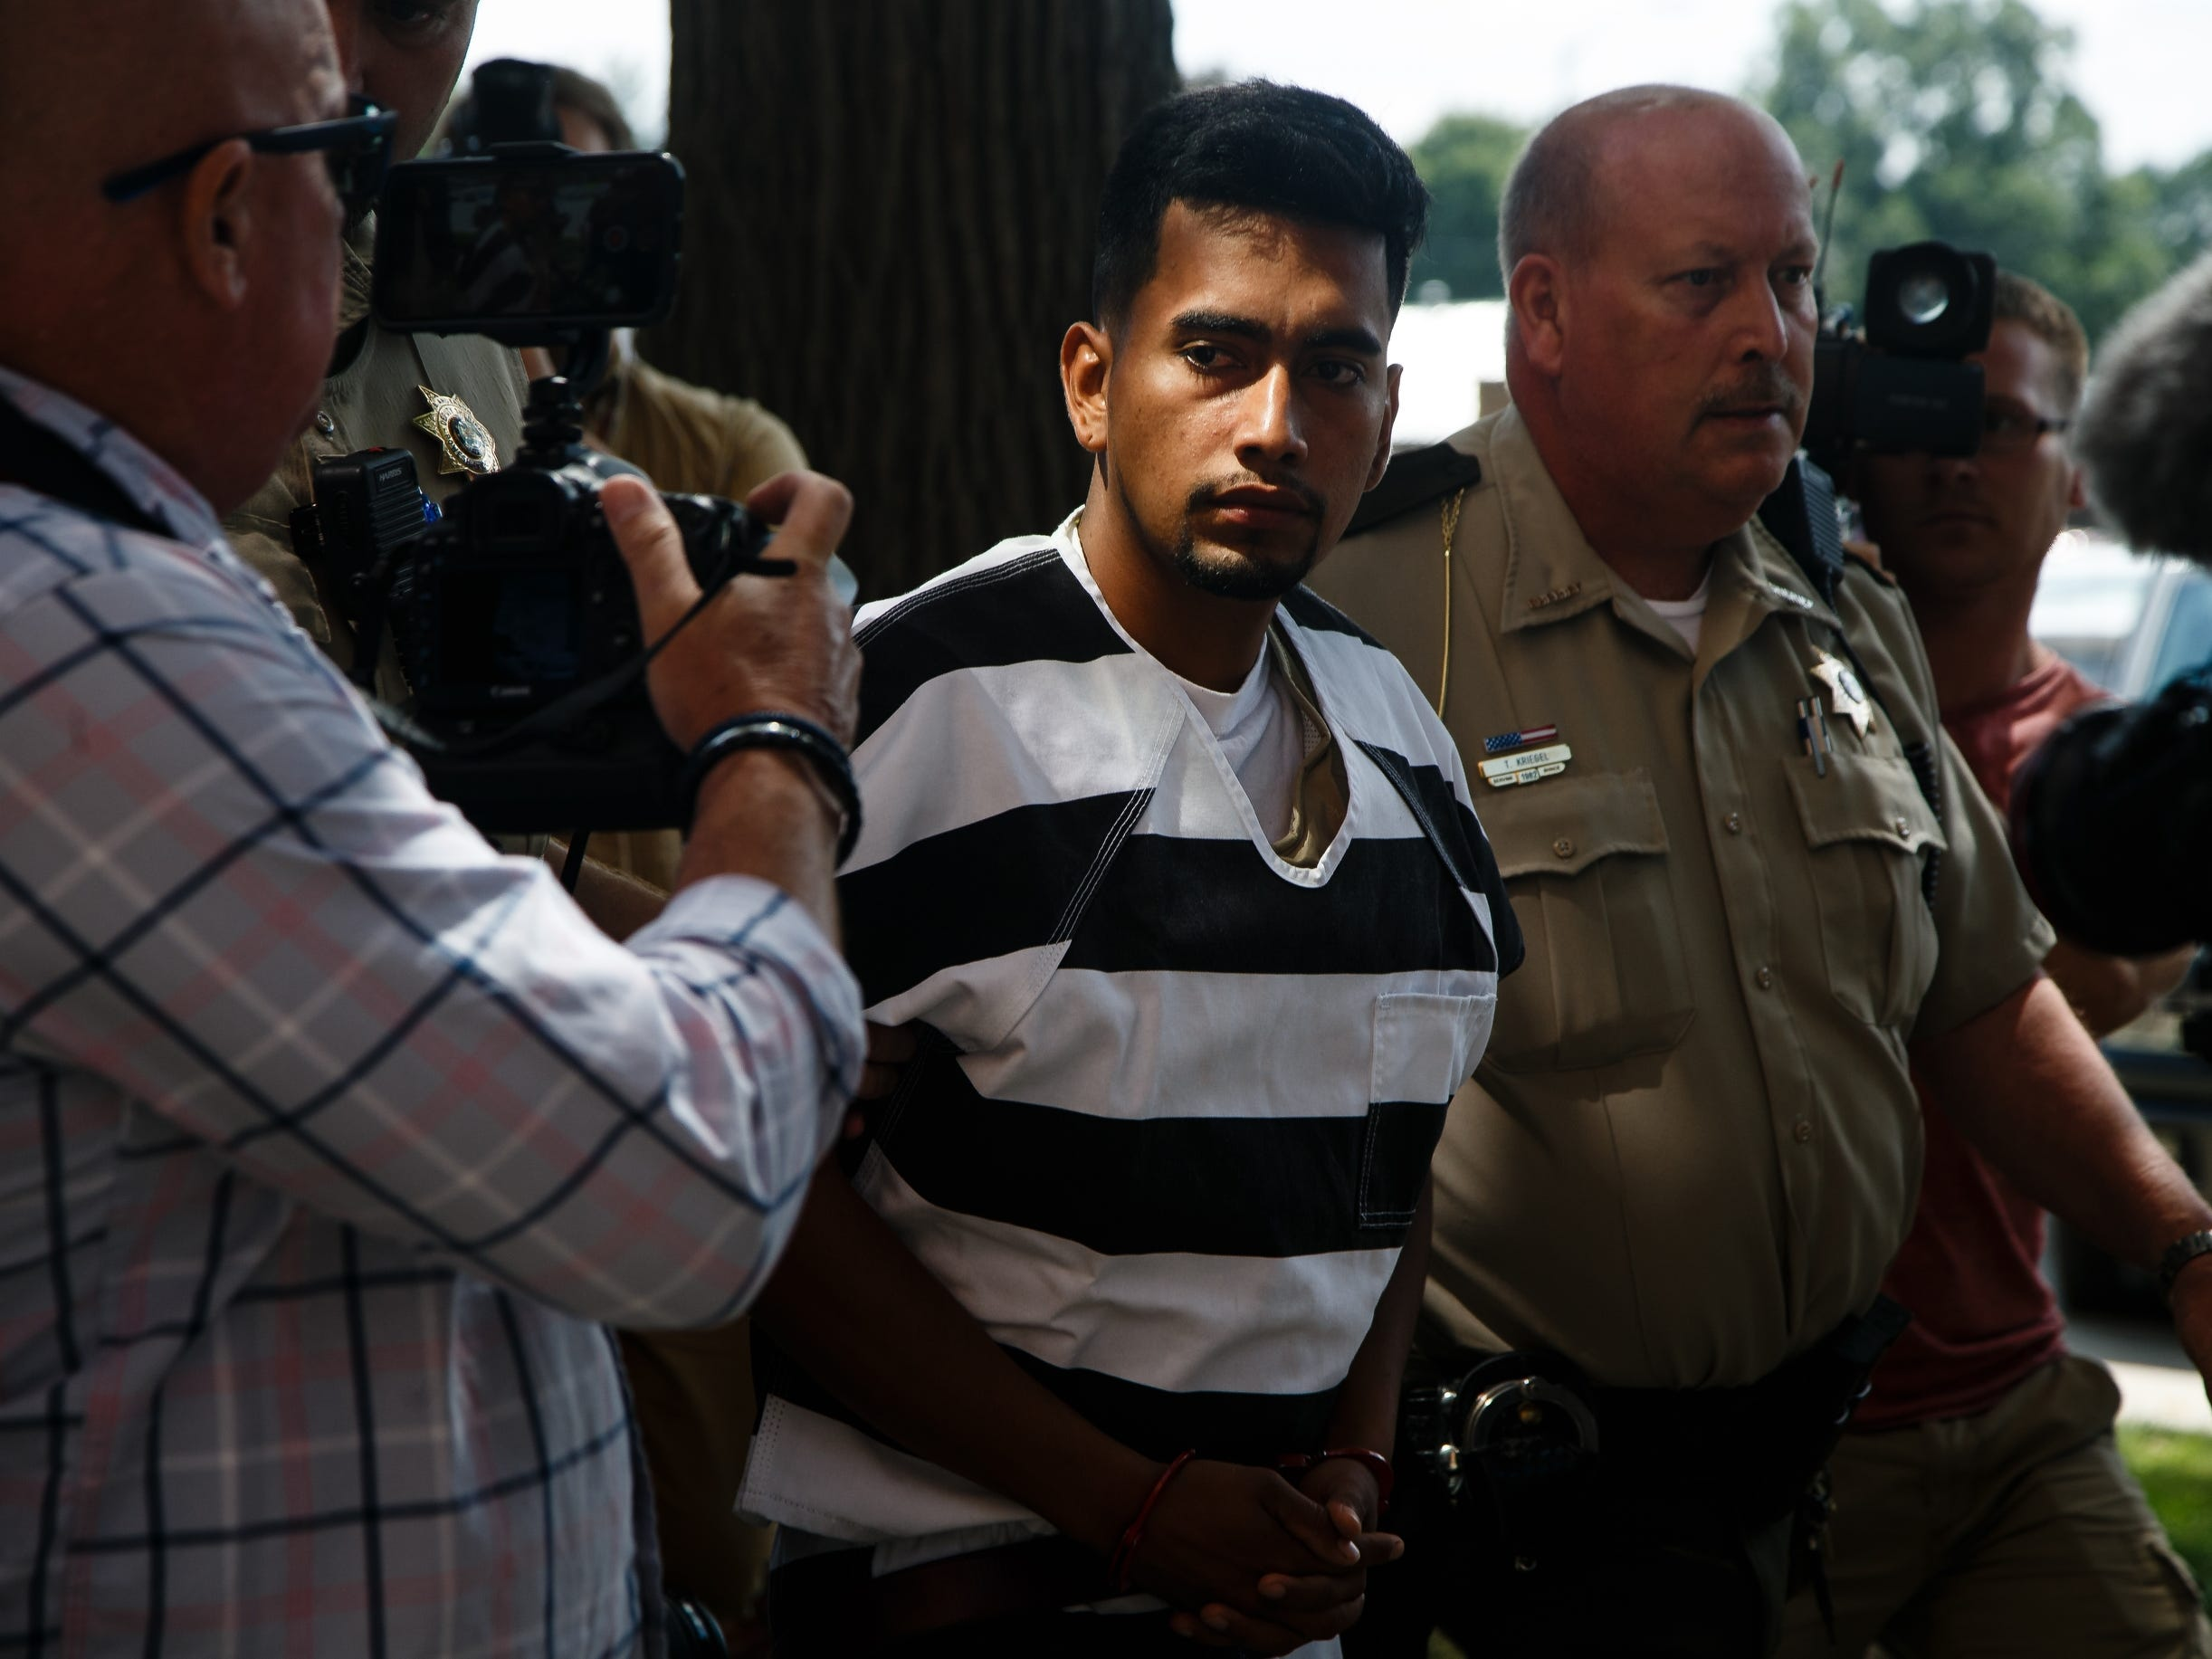 Mollie Tibbetts suspect's past begins to emerge as scrutiny expands